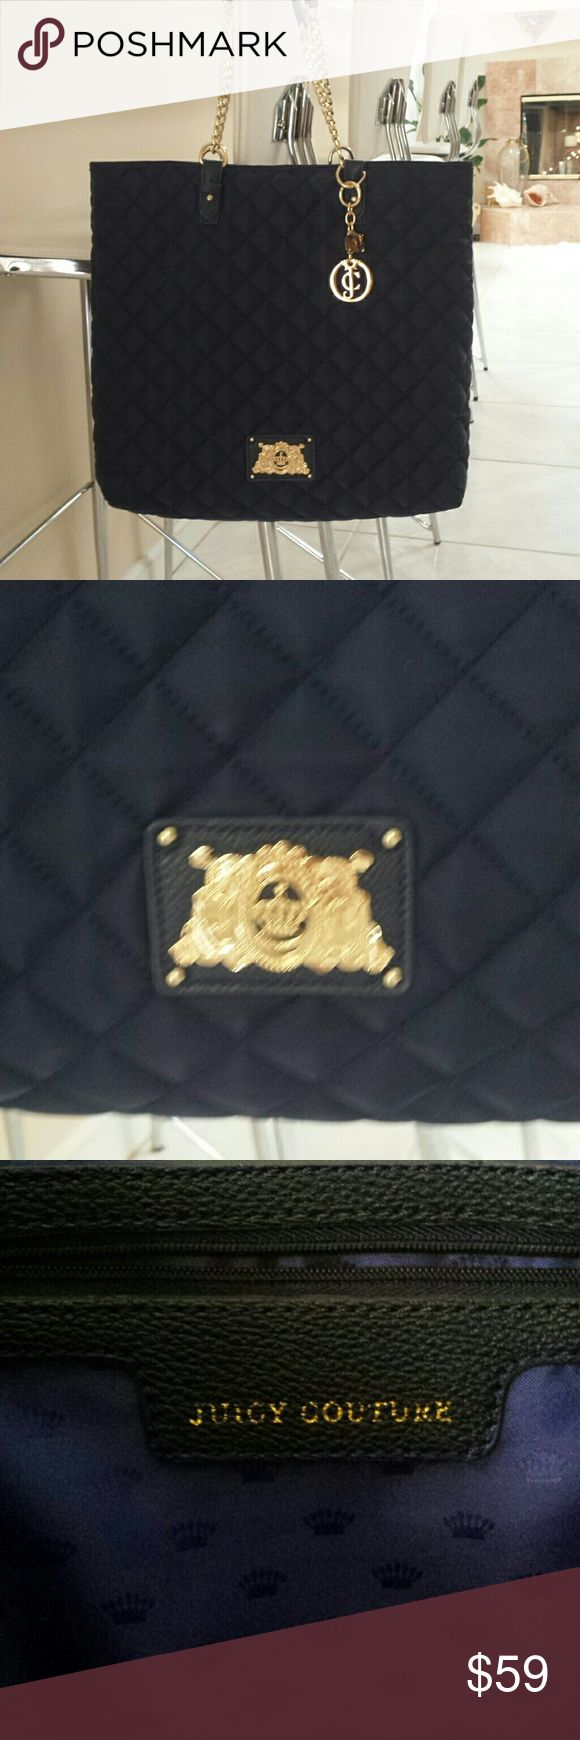 Juicy couture Navy blue quilted purse Juicy Couture Bags Shoulder Bags